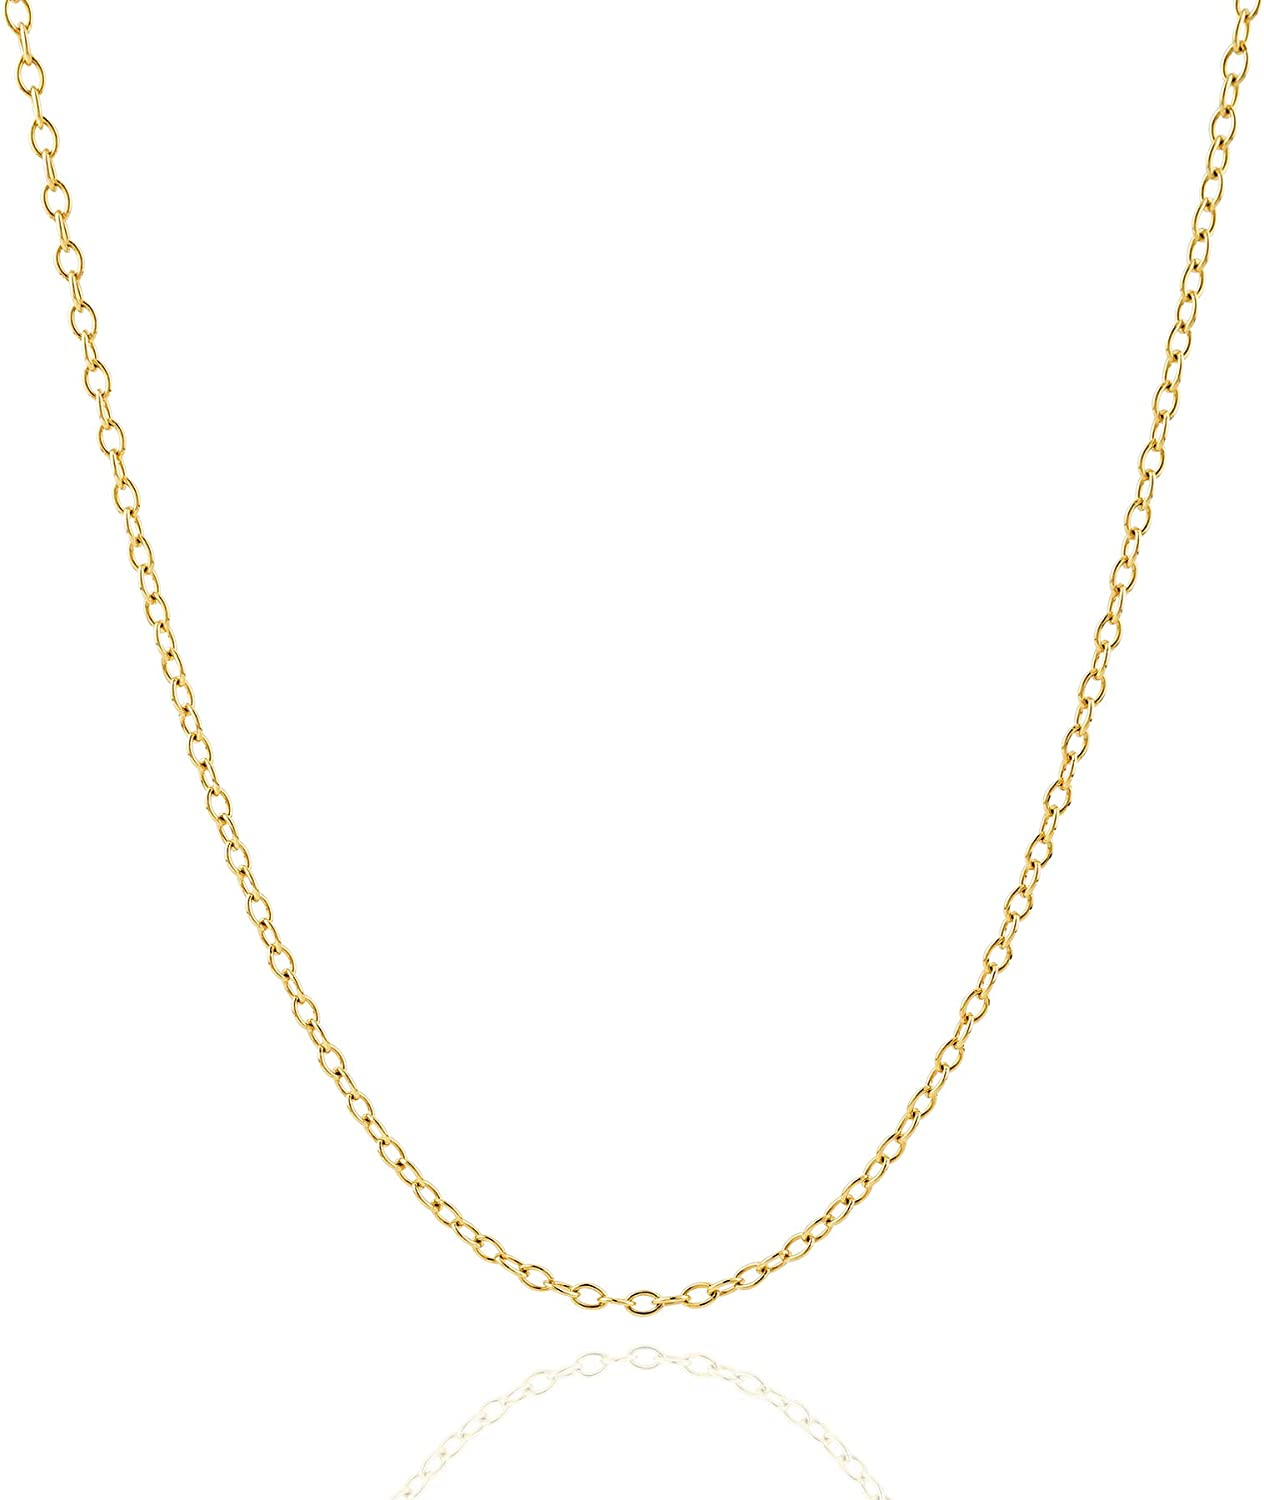 Jewelry Atelier Gold Chain Necklace Collection - 14K Solid Yellow Gold Filled Cable/Pendant Link Chain Necklaces for Women and Men with Different Sizes (2.0mm, 2.7mm, or 3.6mm)